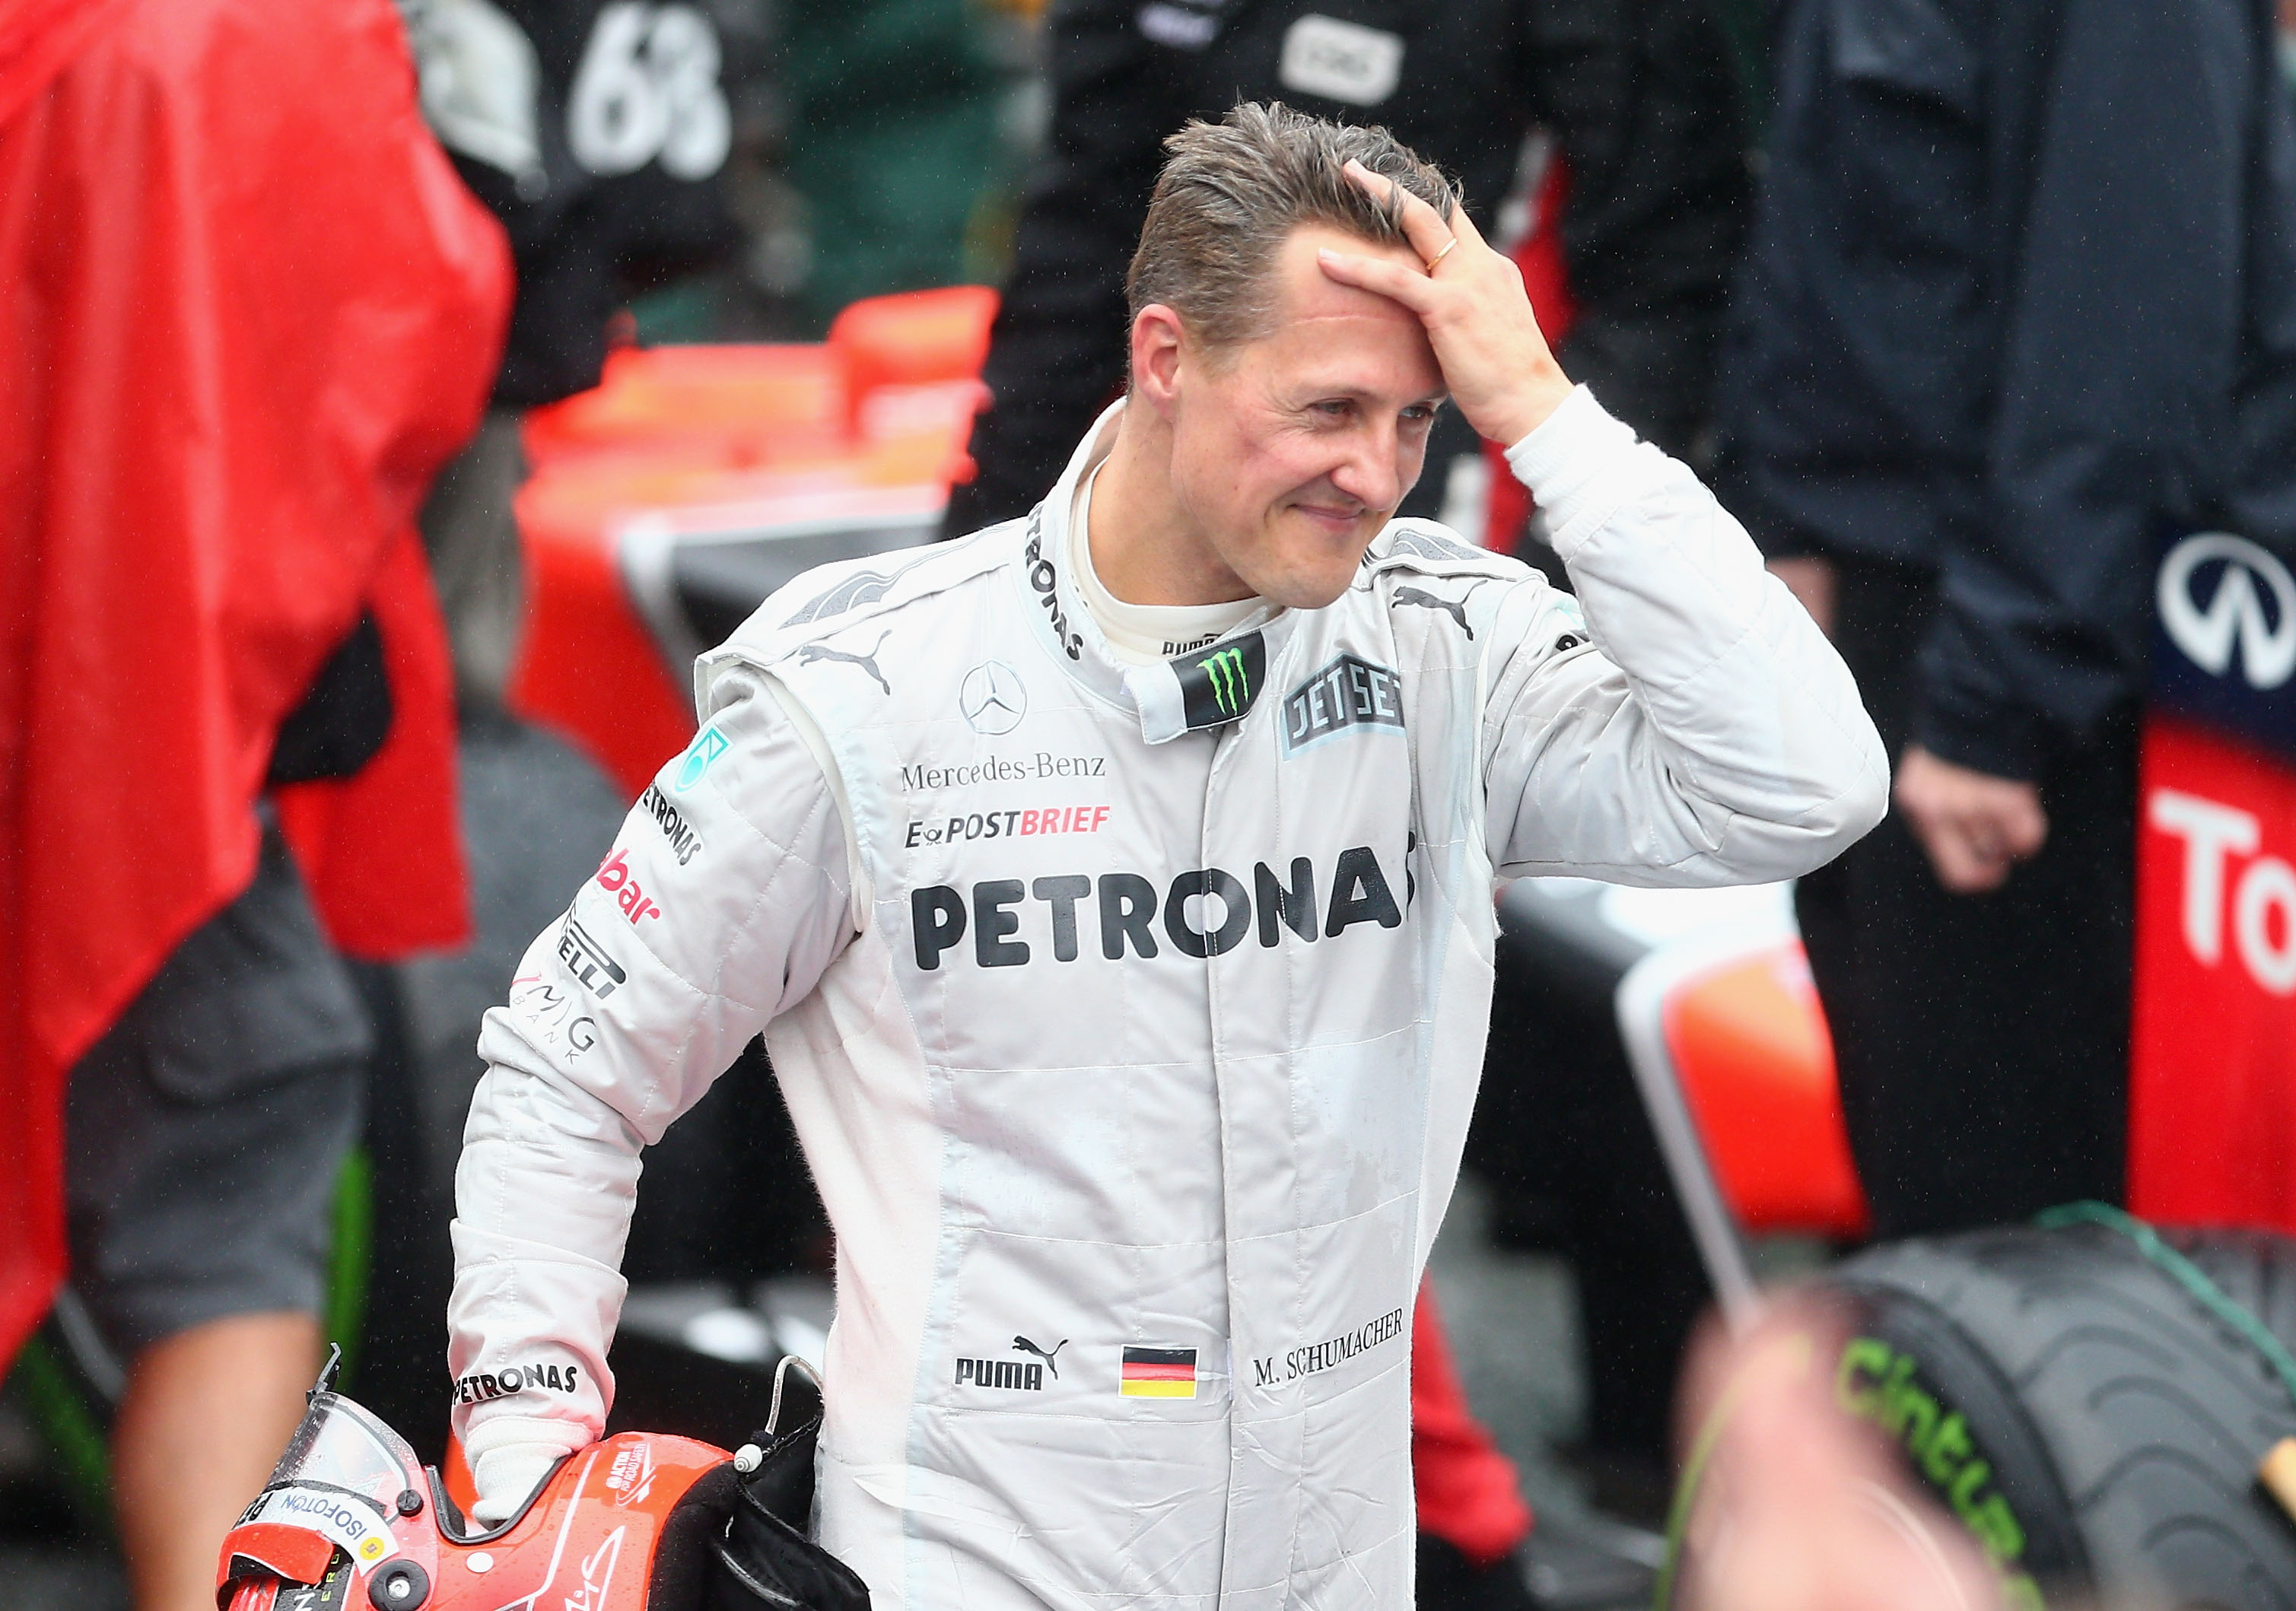 Michael Schumacher of Germany and Mercedes GP reacts in parc ferme after finishing his last F1 race following the Brazilian Formula One Grand Prix at the Autodromo Jose Carlos Pace on November 25, 2012, in Sao Paulo, Brazil (Source: Clive Mason/Getty Images)